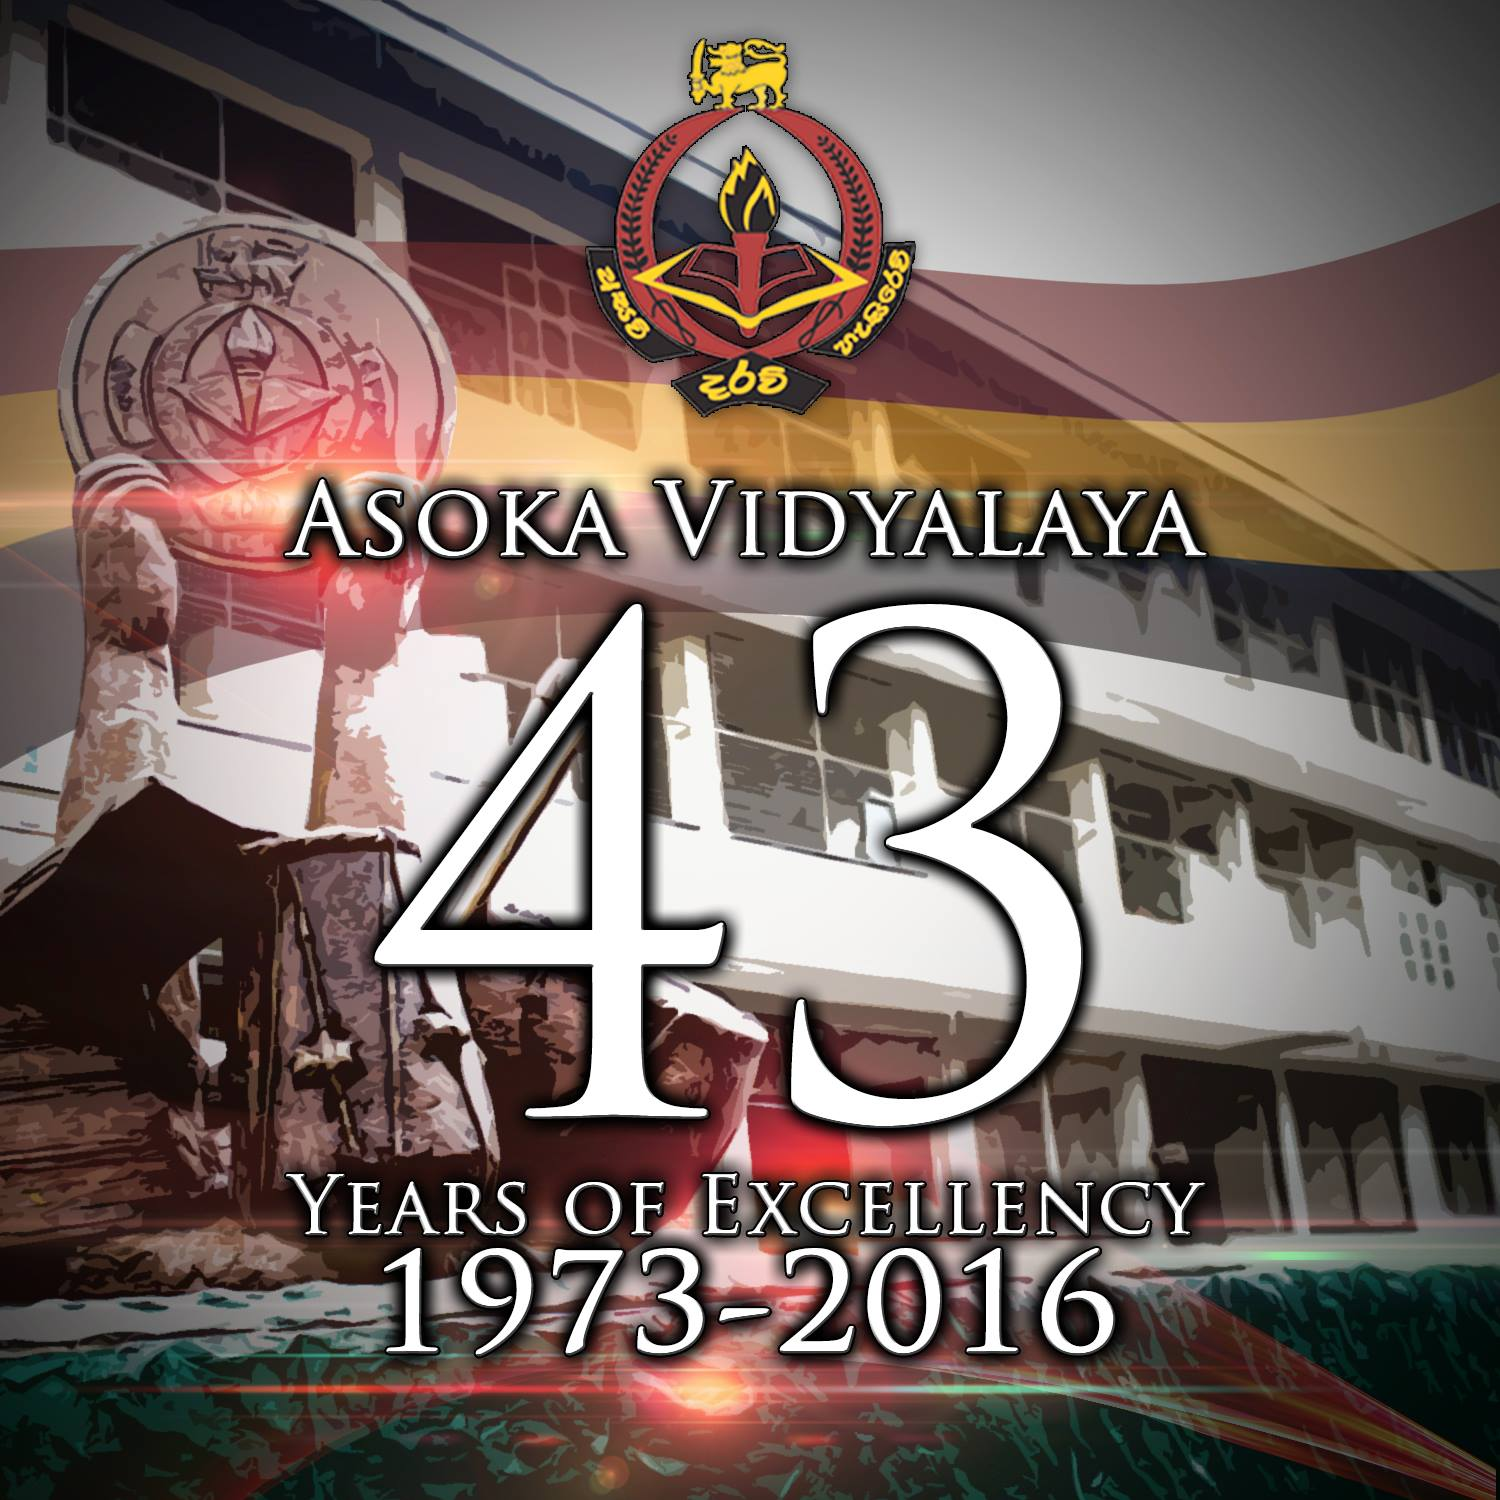 Celebrating 43 years of Excellency